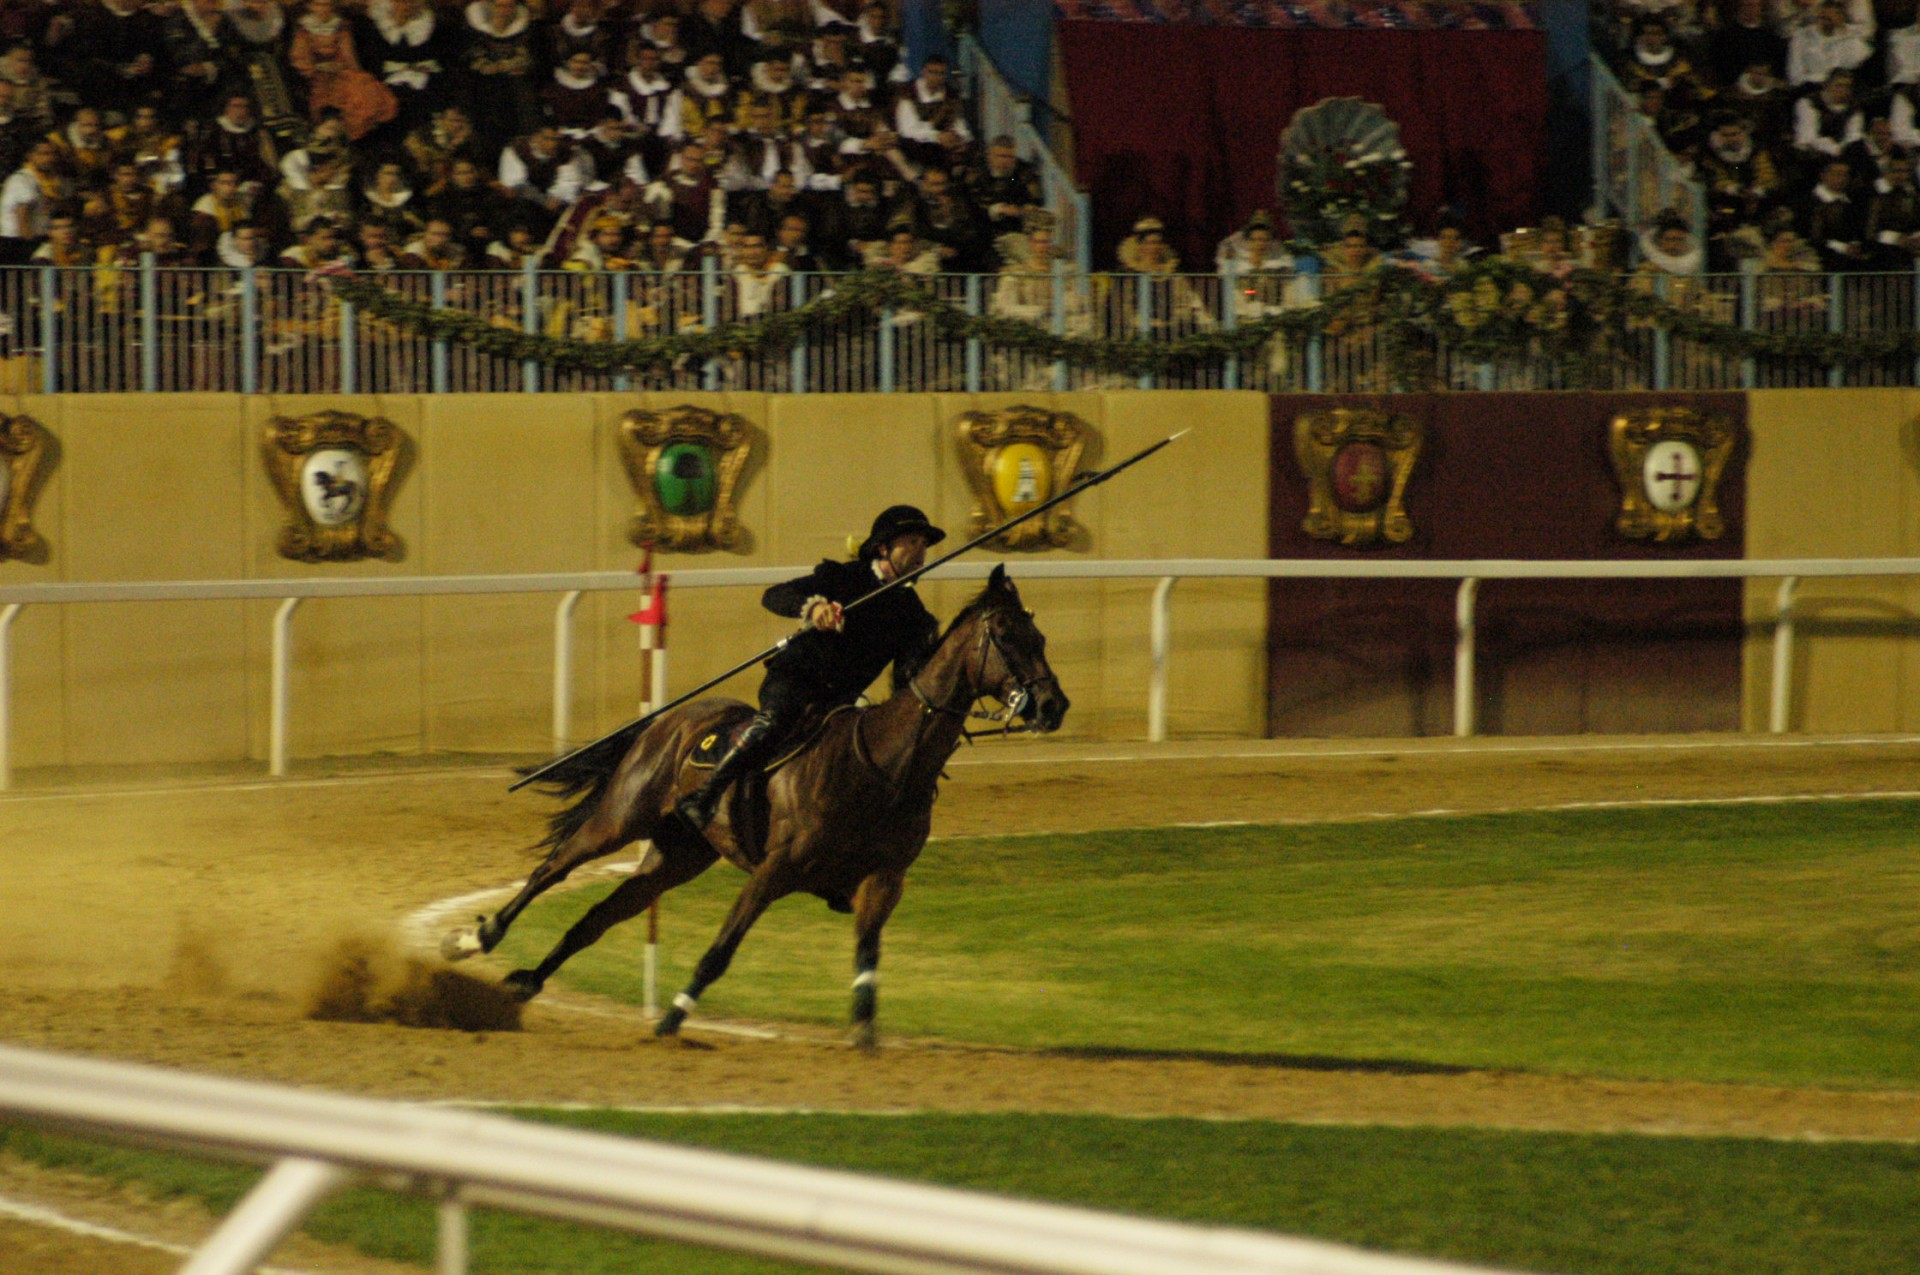 Joust of the Quintana in Foligno